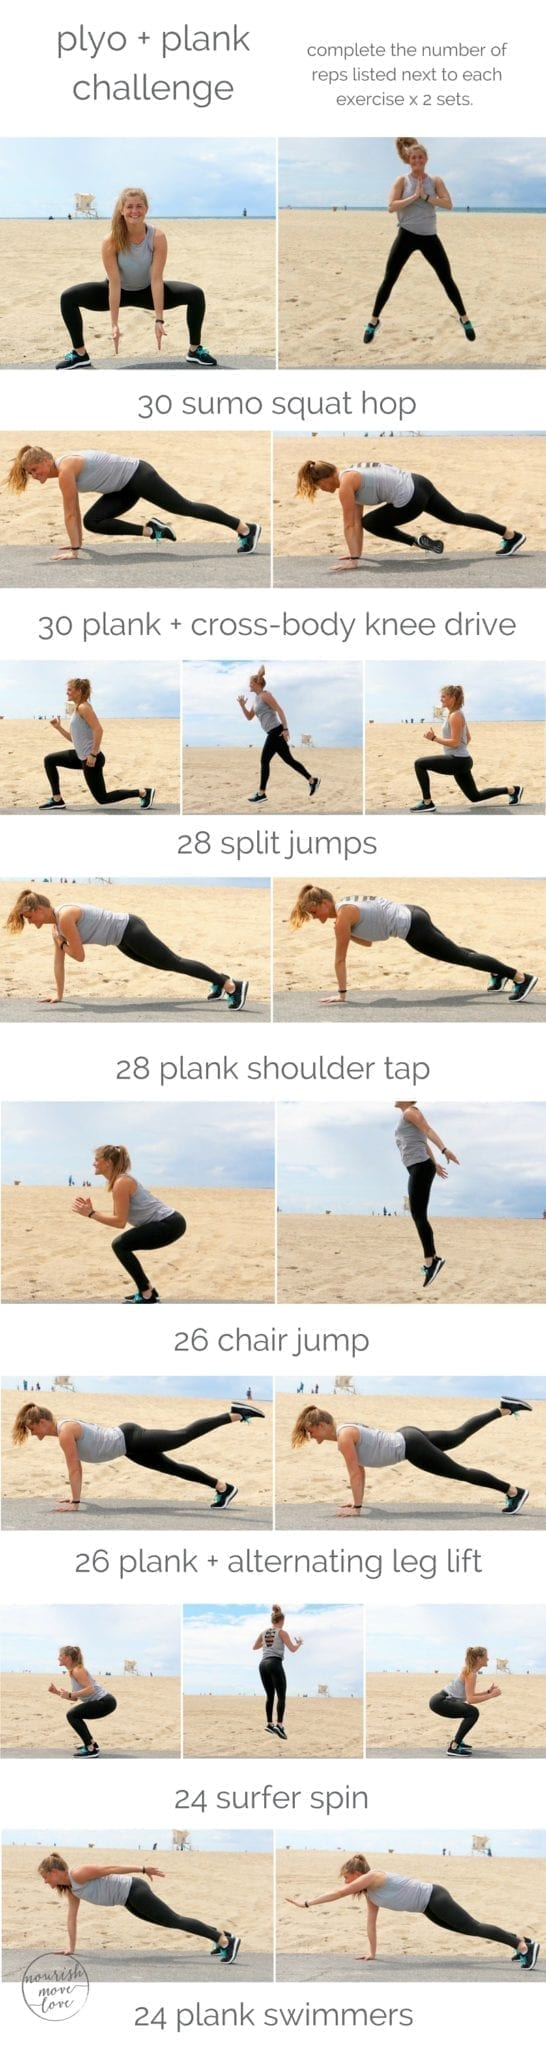 plank + plyo bodyweight workout | the most challenging planks + plyos workout; burn calories, build explosive strength, and seriously tone your torso using just your bodyweight. | www.nourishmovelove.com